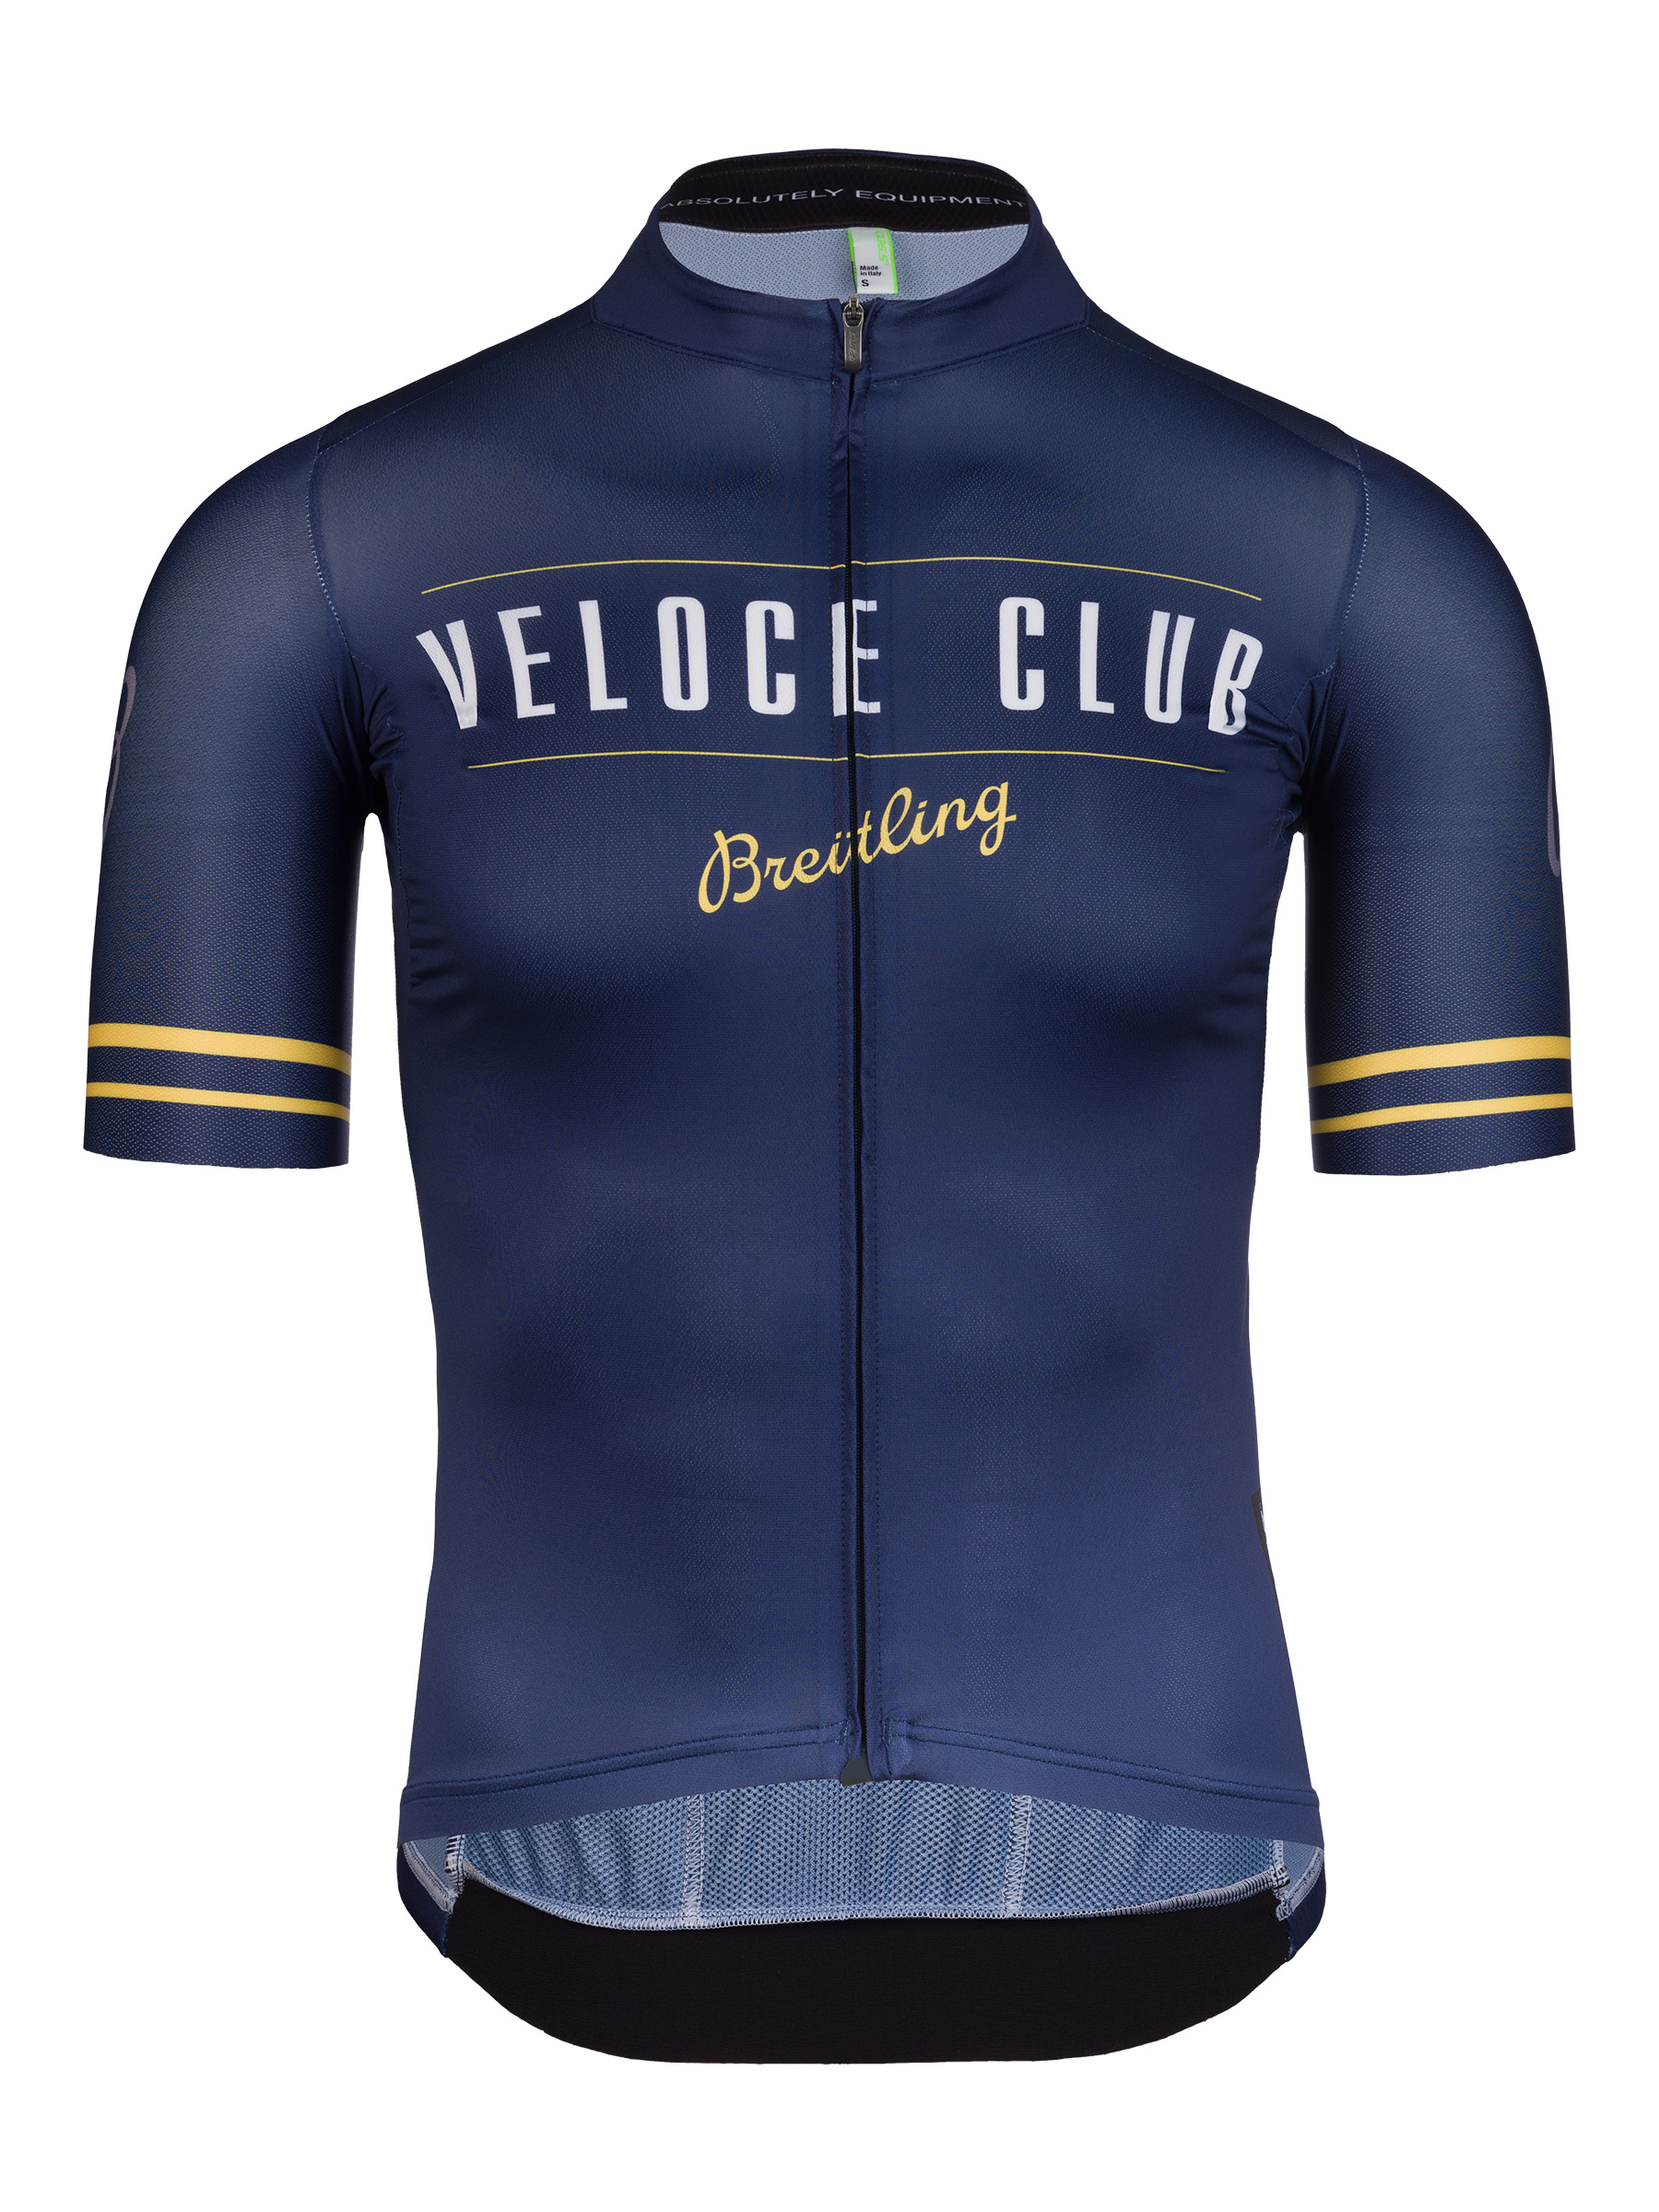 mens-cycling-jersey-breitling-031